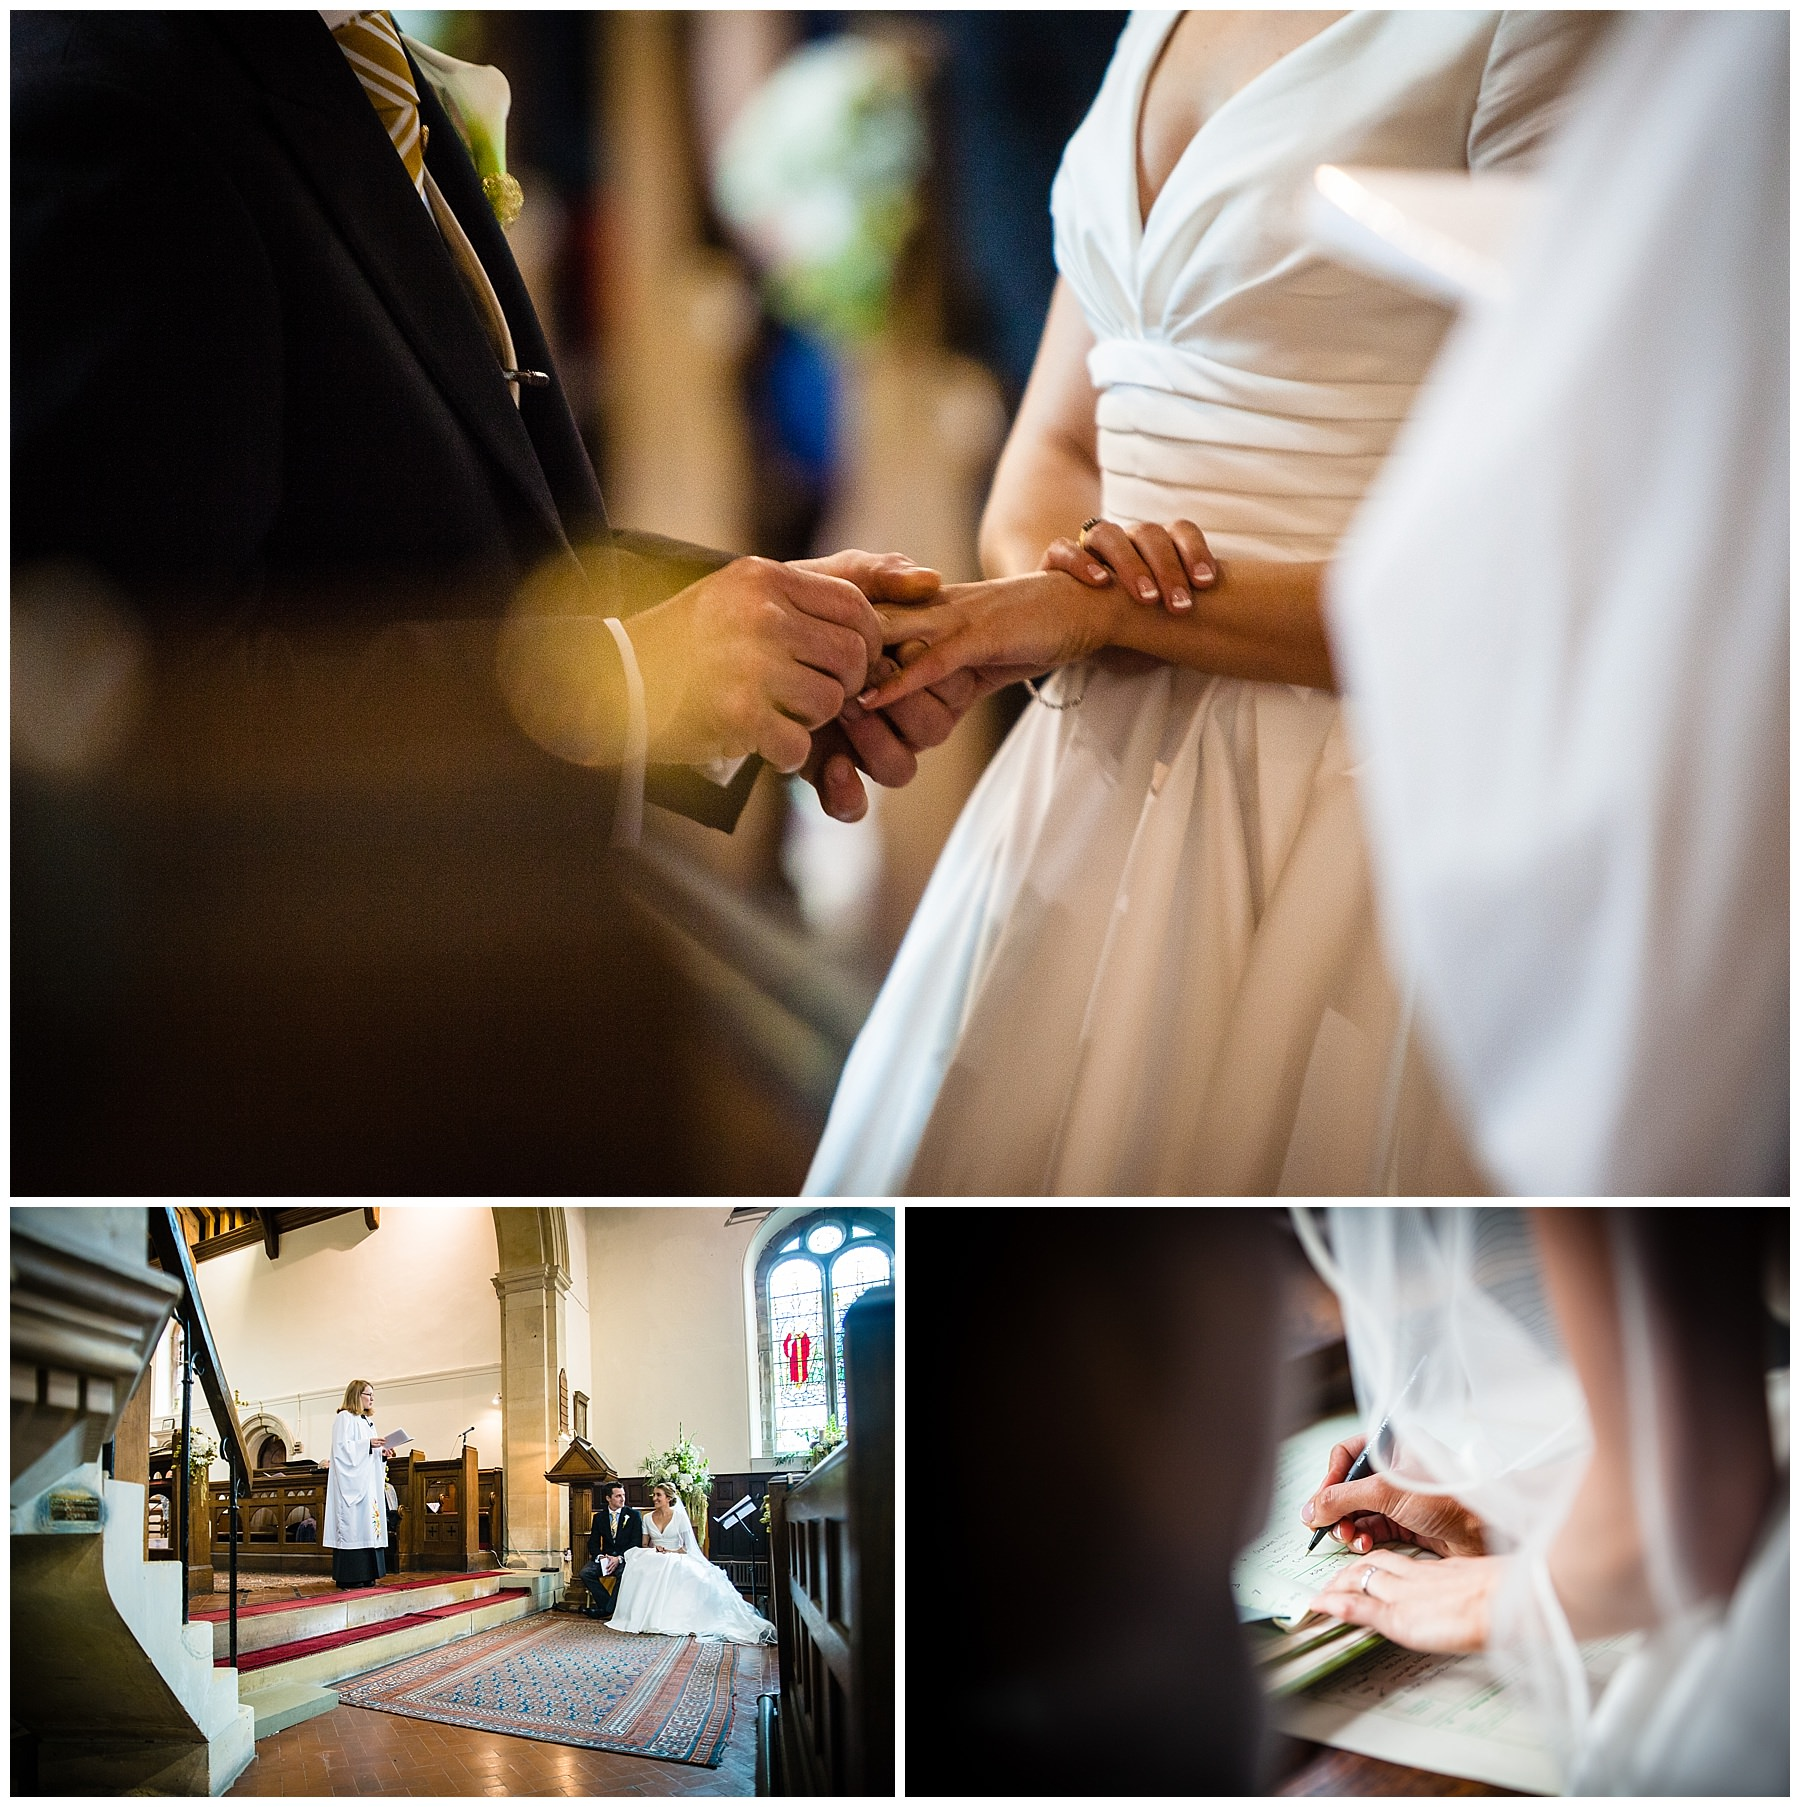 Wedding Ceremony at St. Marys and St. Michaels Church Burleydam, Whitchurch Shropshie - Charlotte Giddings Photography